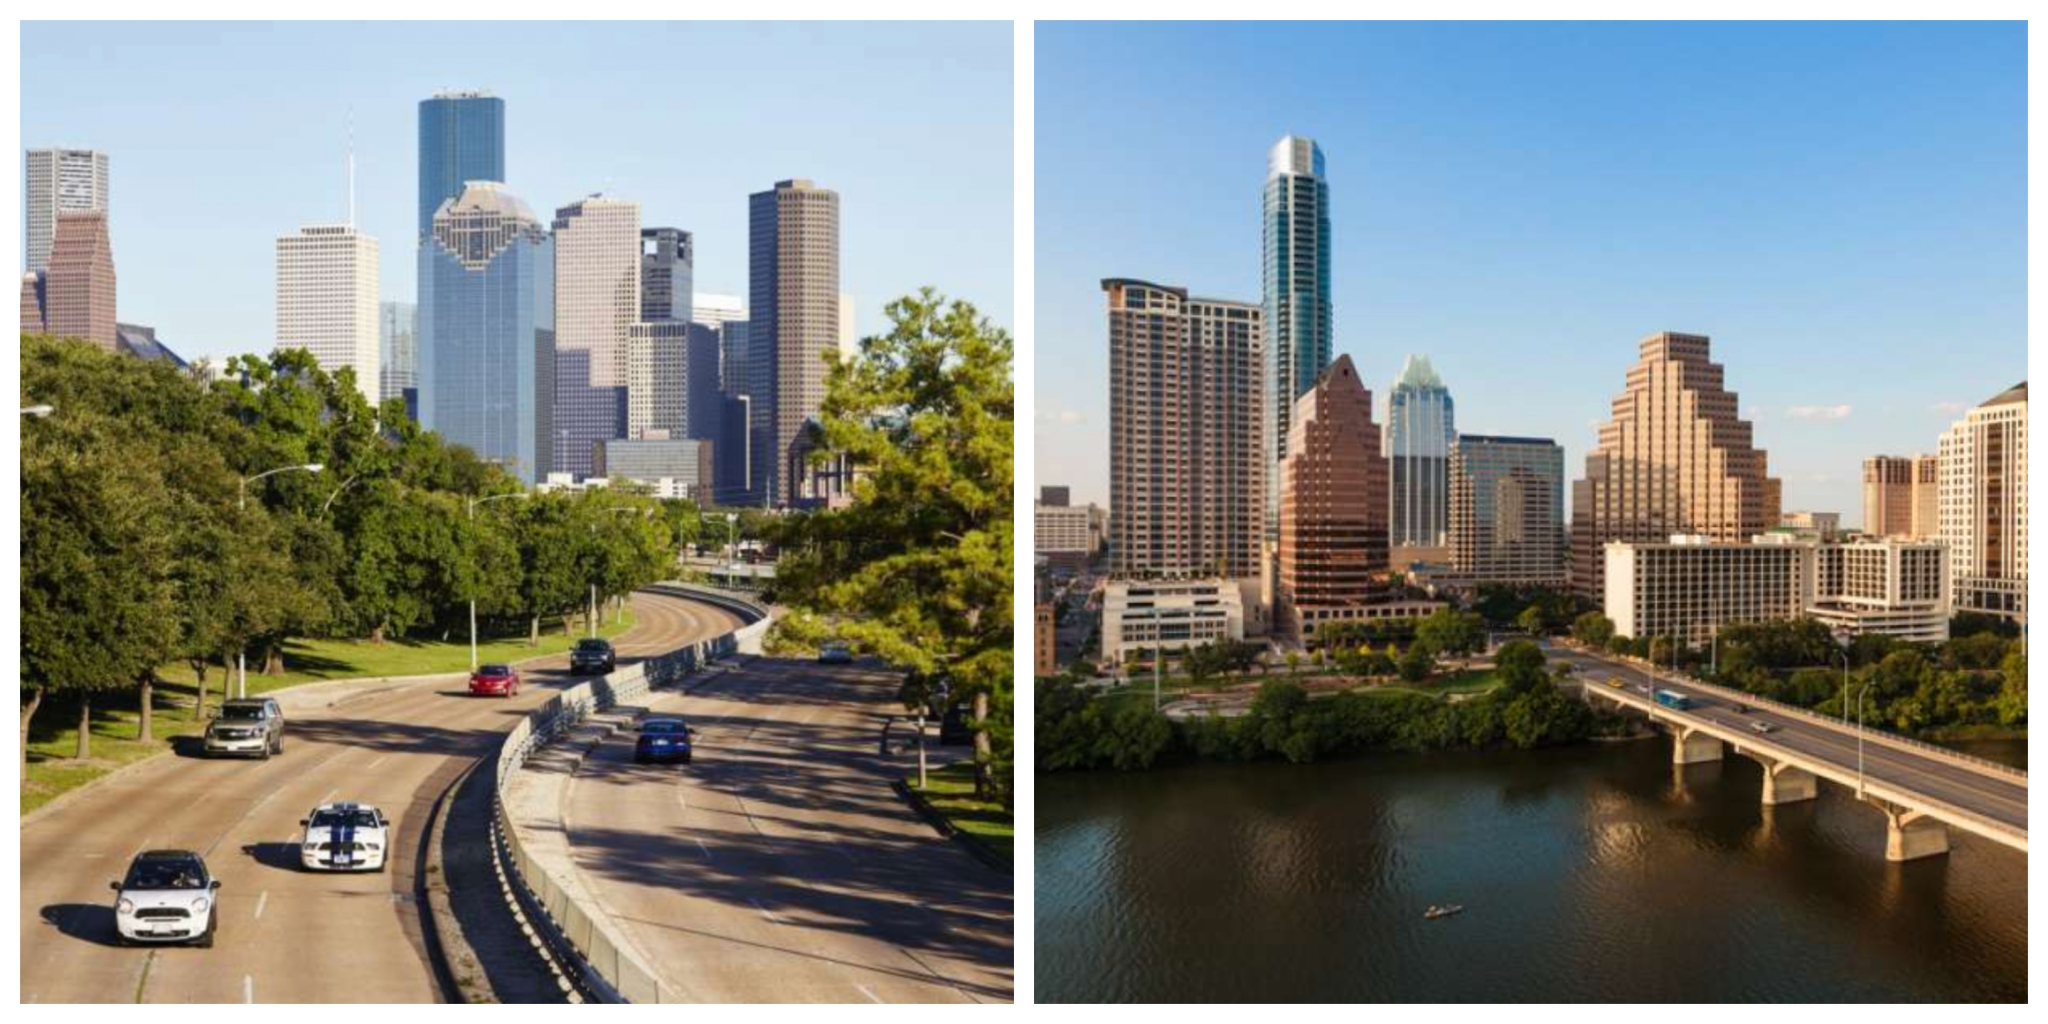 Austin is just as disaster prone as Houston, says new study